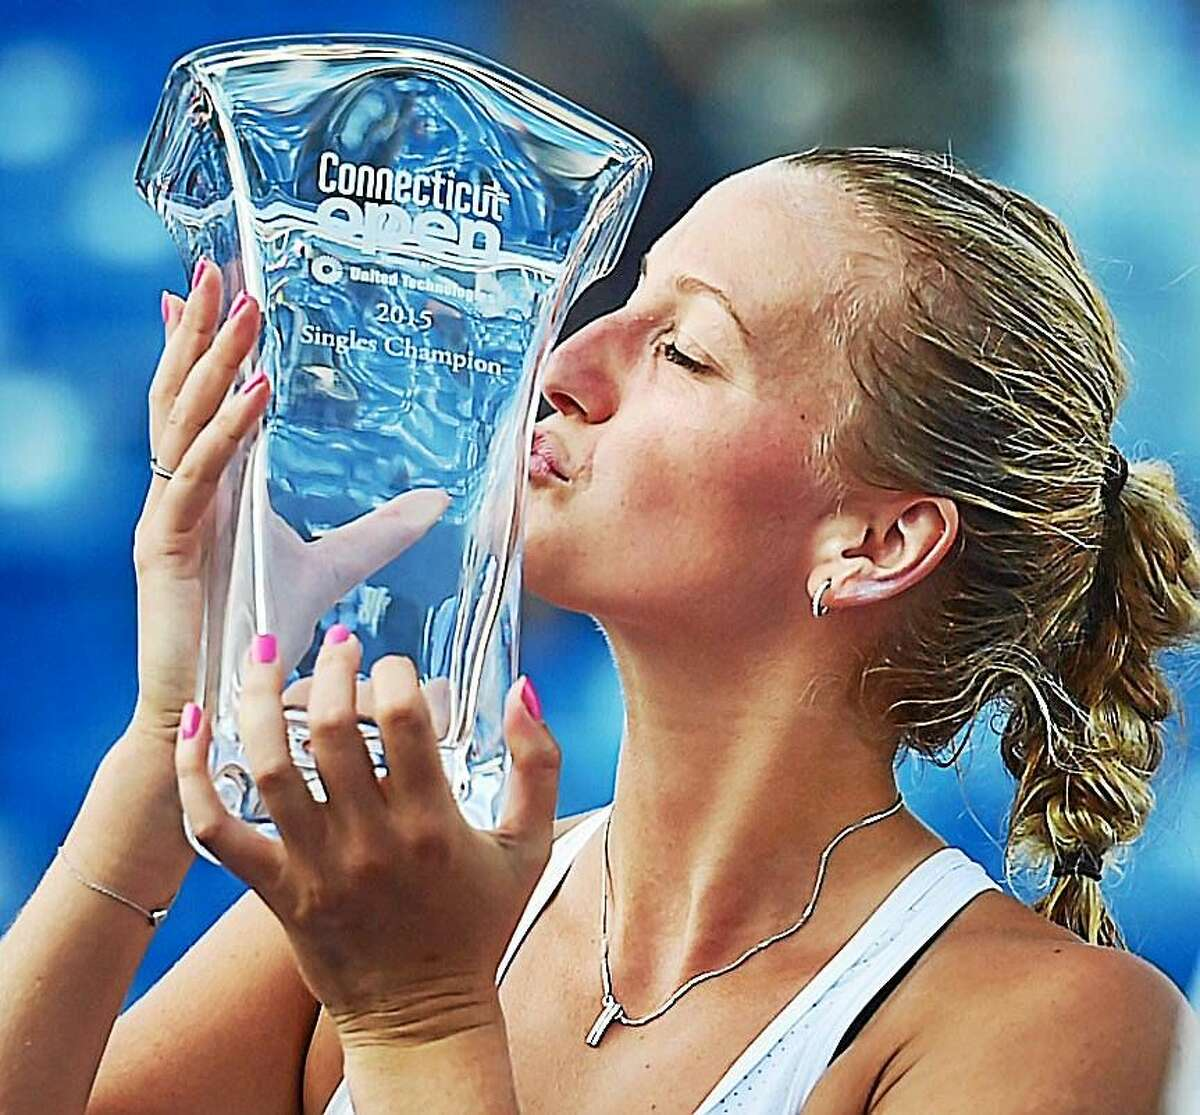 Petra Kvitova kisses the trophy after defeating Lucie Safarova in the final of the Connecticut Open on Saturday at the Connecticut Tennis Center in New Haven.